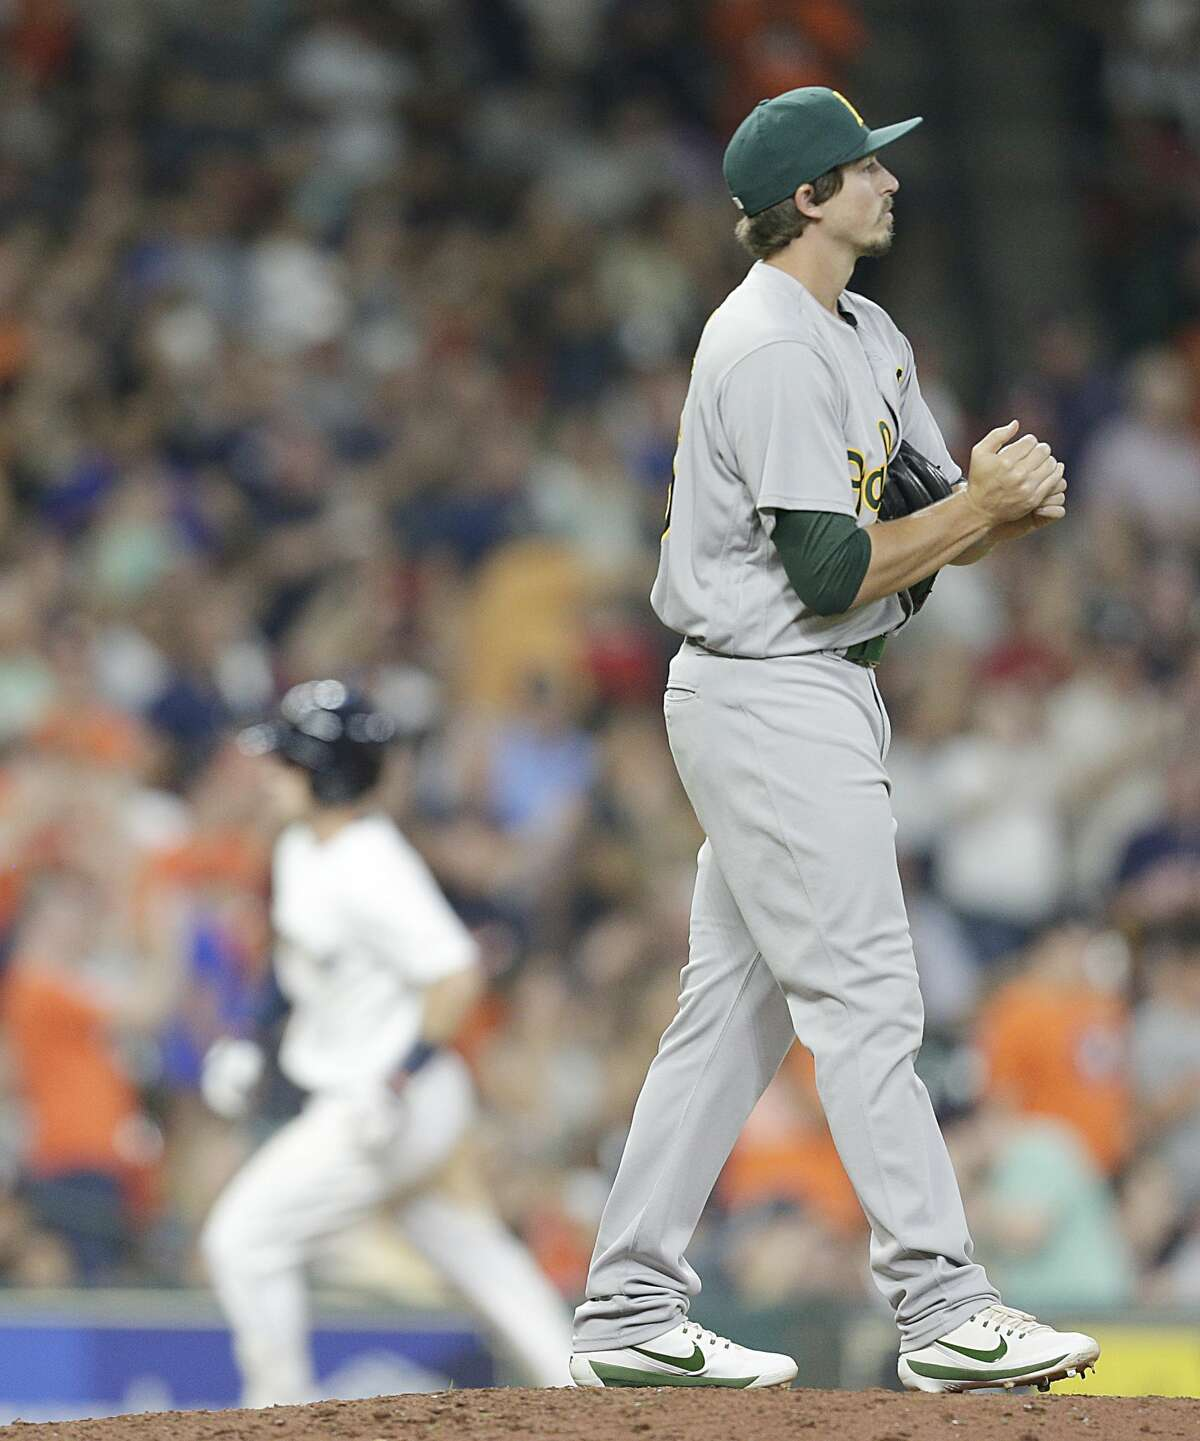 Ryan Dull #66 of the Oakland Athletics reacts as Alex Bregman #2 of the Houston Astros circles the bases after hitting a home run in the eighth inning at Minute Maid Park on August 19, 2017 in Houston, Texas. (Photo by Thomas B. Shea/Getty Images)